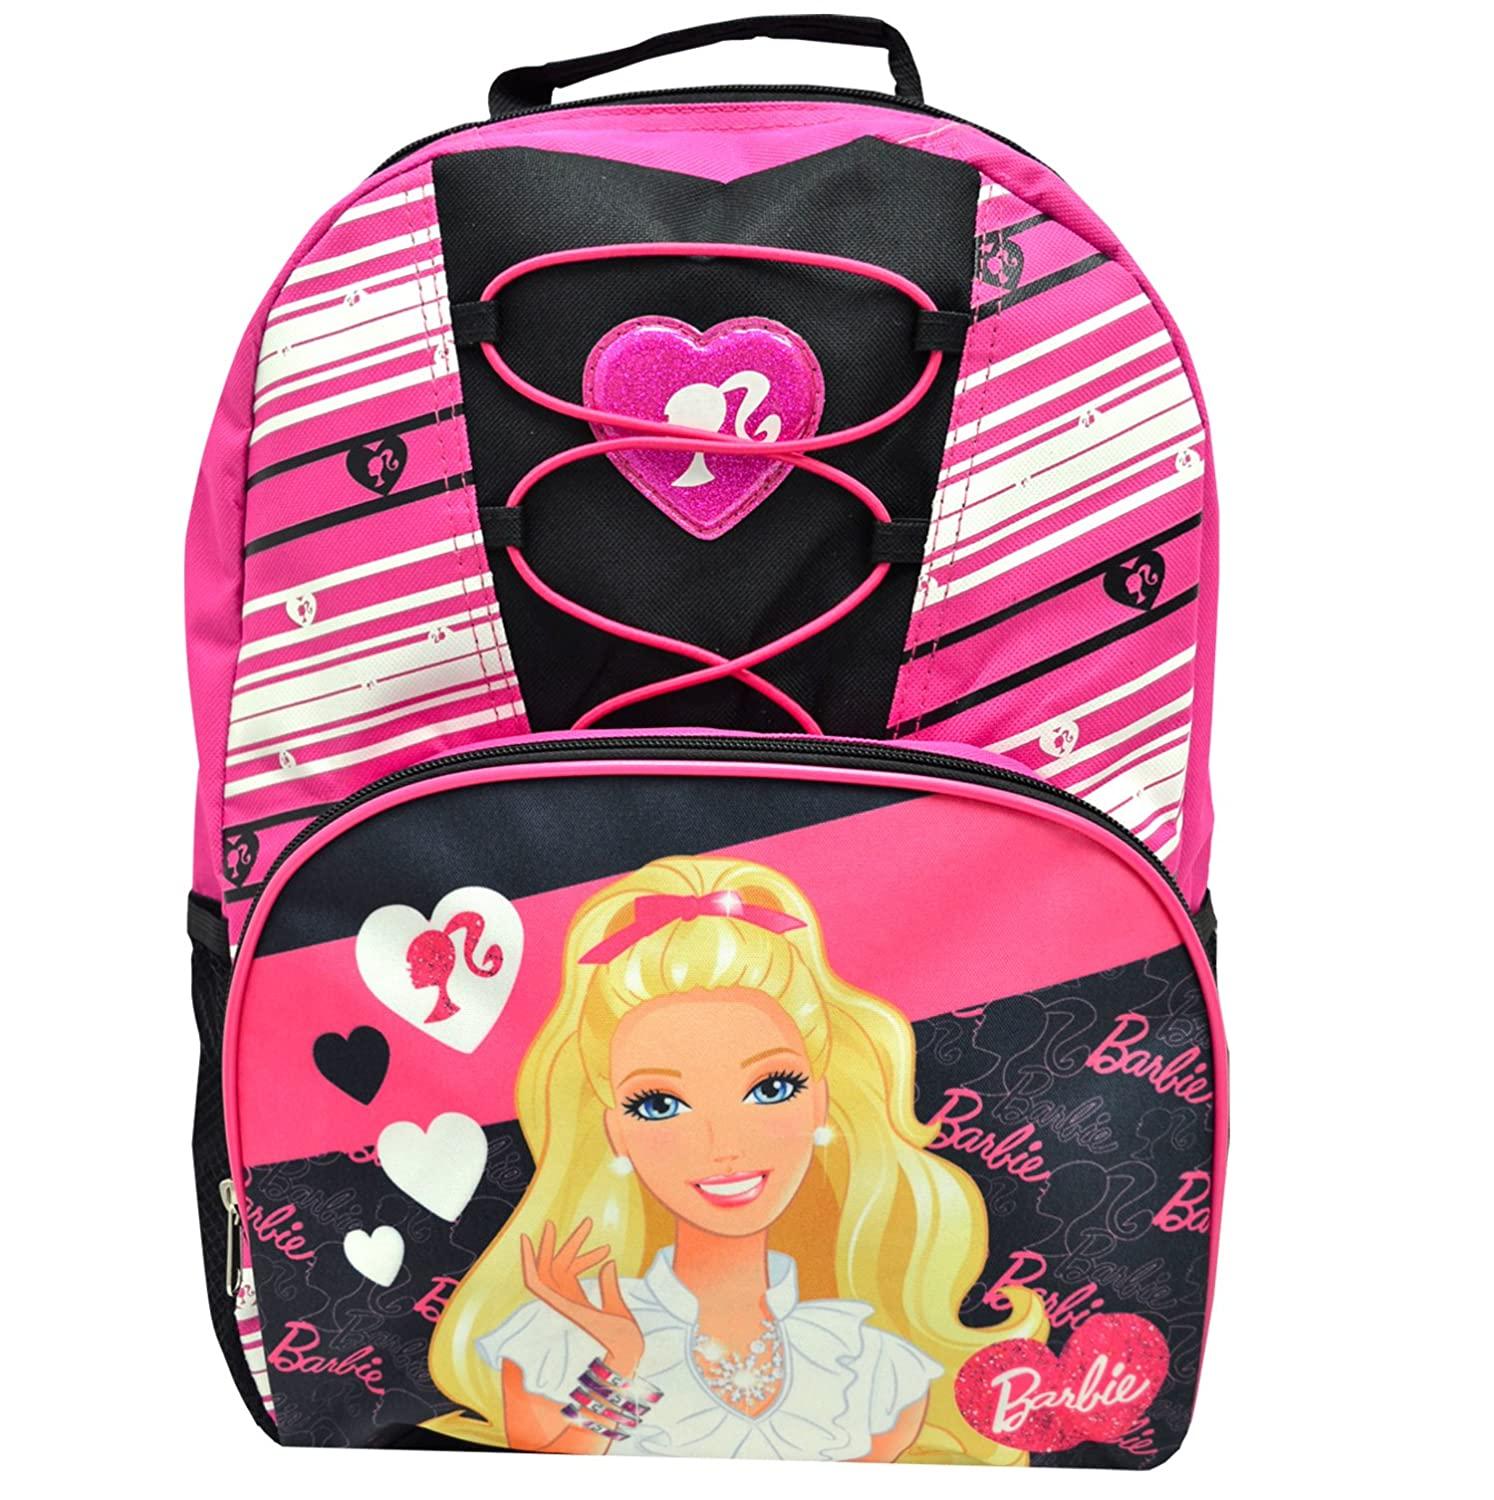 8c9157c912ed Barbie deluxe lace girls pink black school backpack inch toys games jpg  1494x1500 Barbie backpack